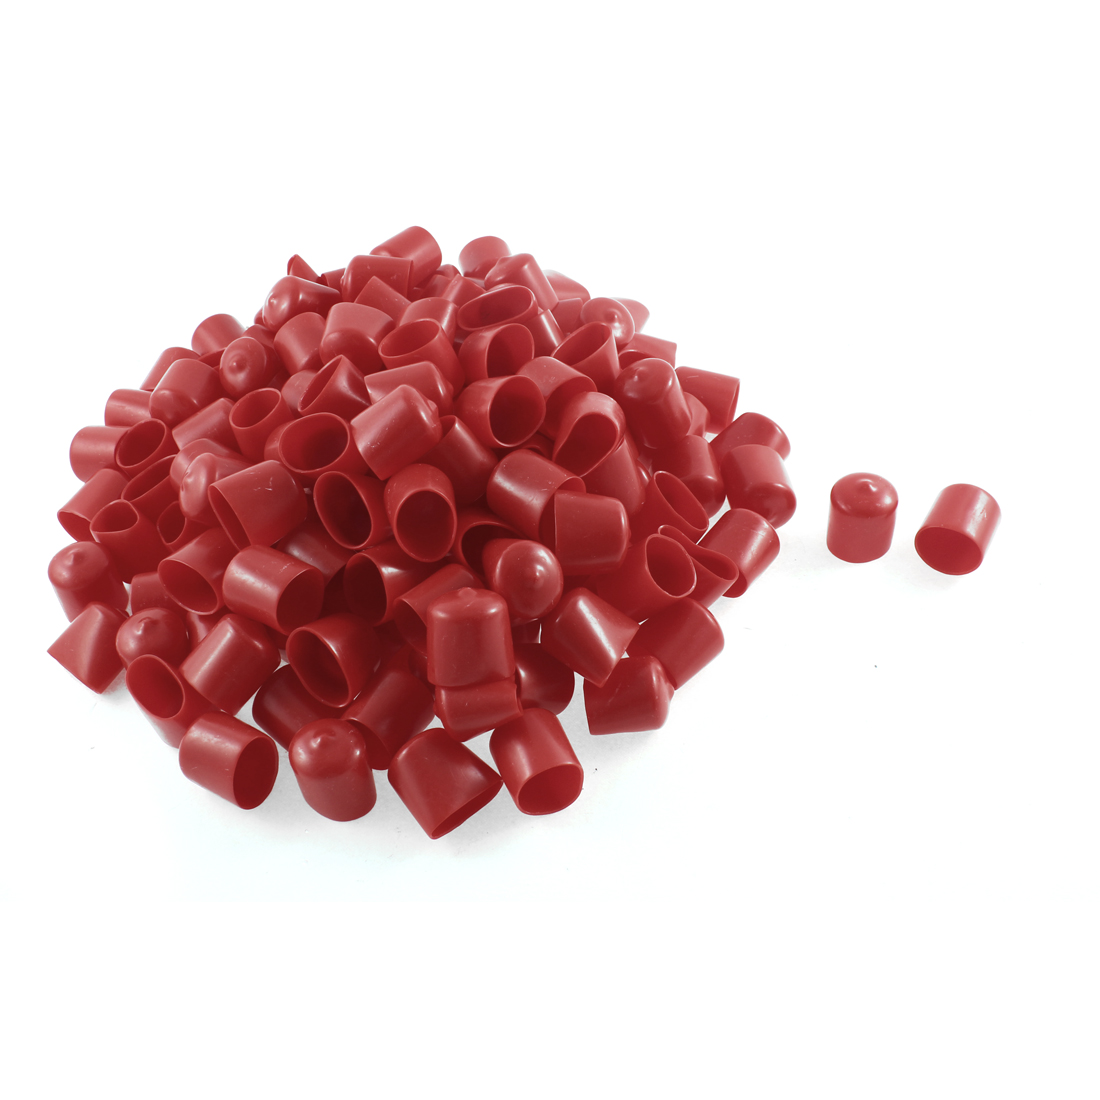 150Pcs Red Soft Plastic PVC Insulated End Sleeves Caps Cover 22mm Dia